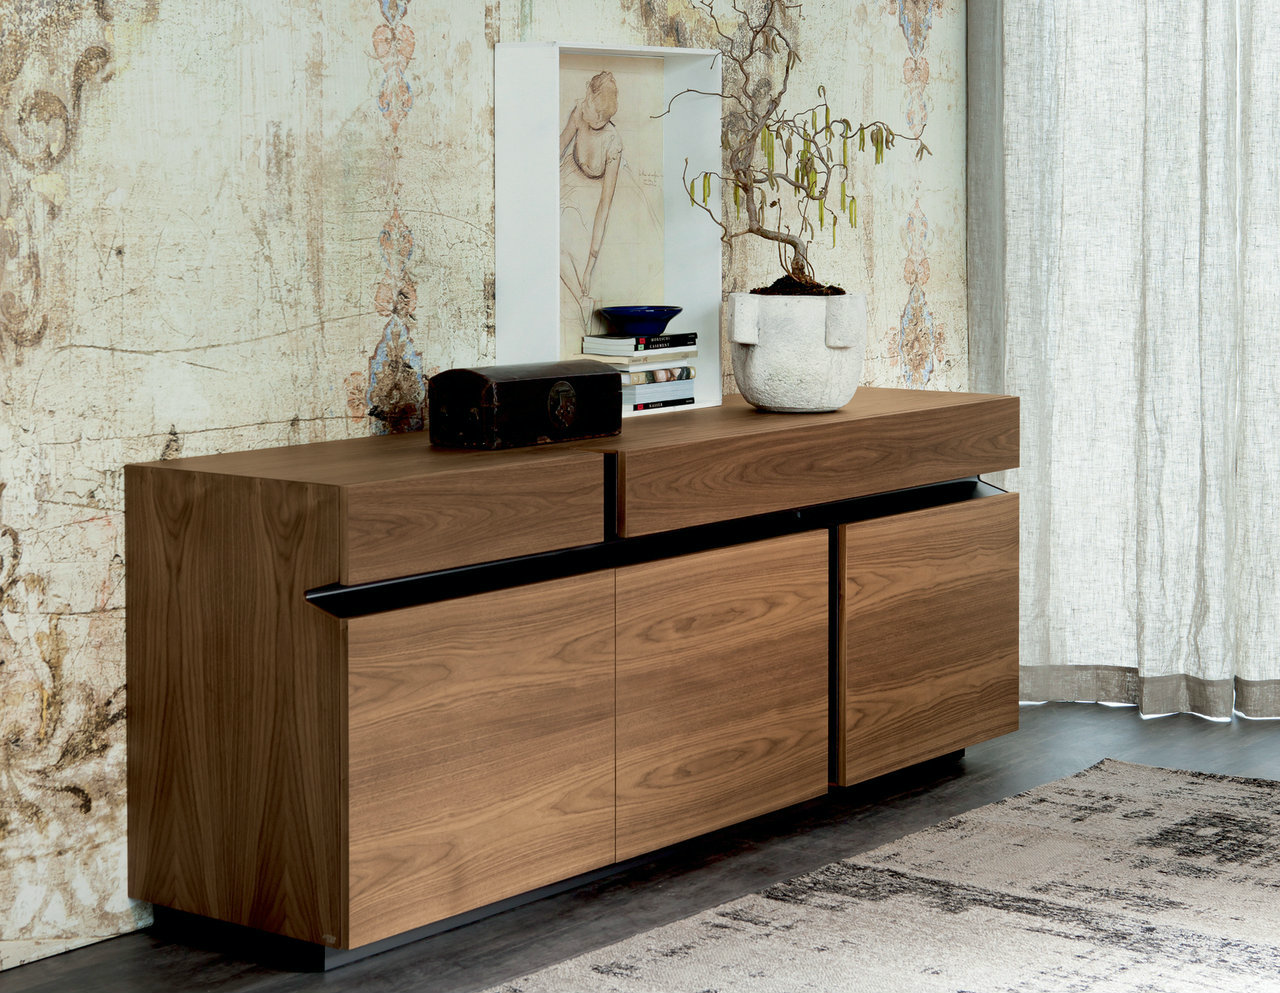 Made In Italy Sideboard Decor Furniture Furniture Design